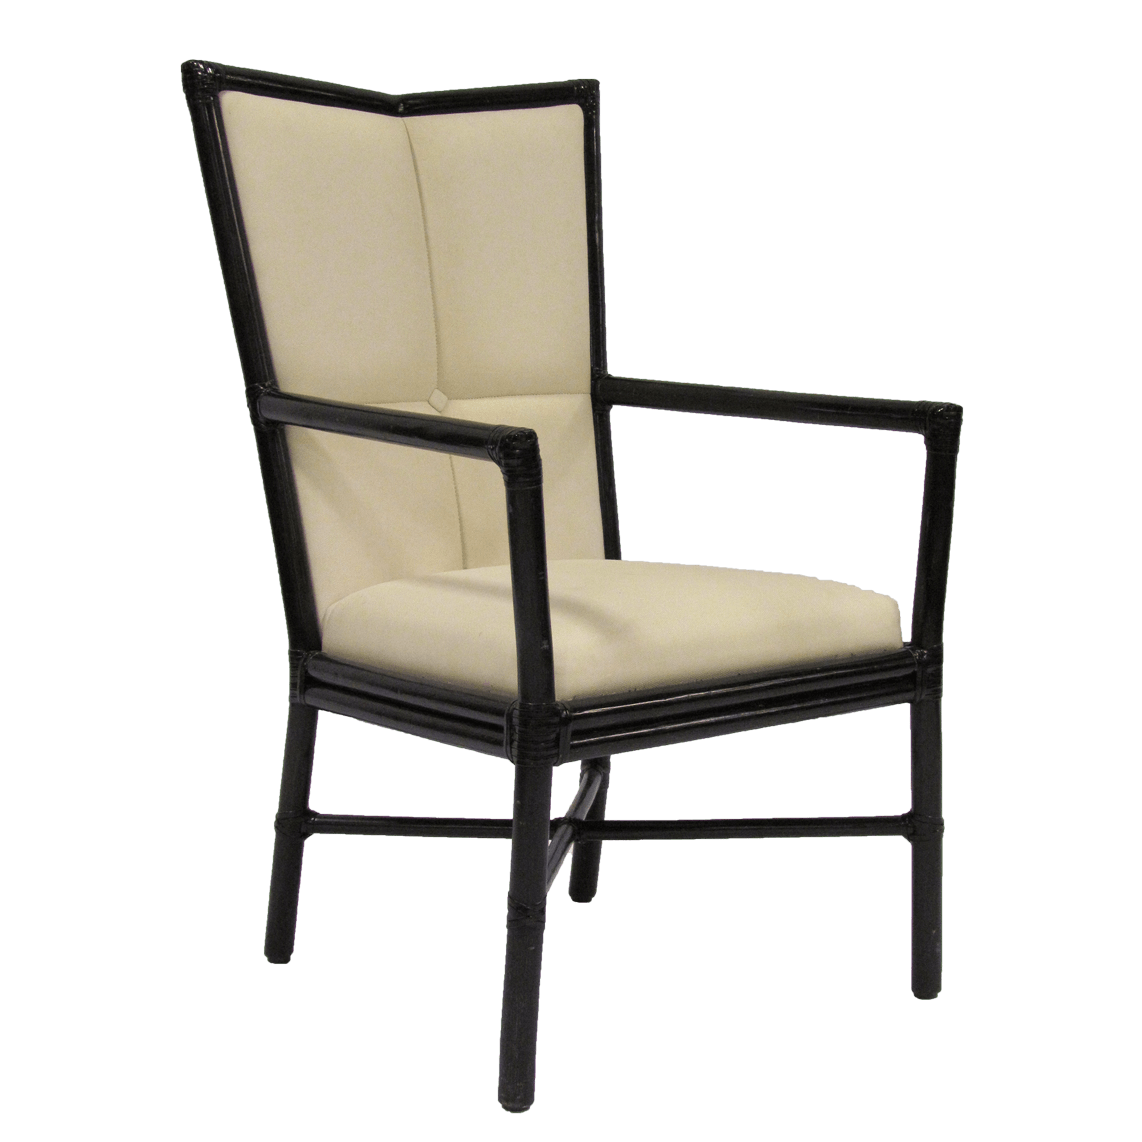 McGuire Cambria Arm Chair by Orlando Diaz-Azcuy